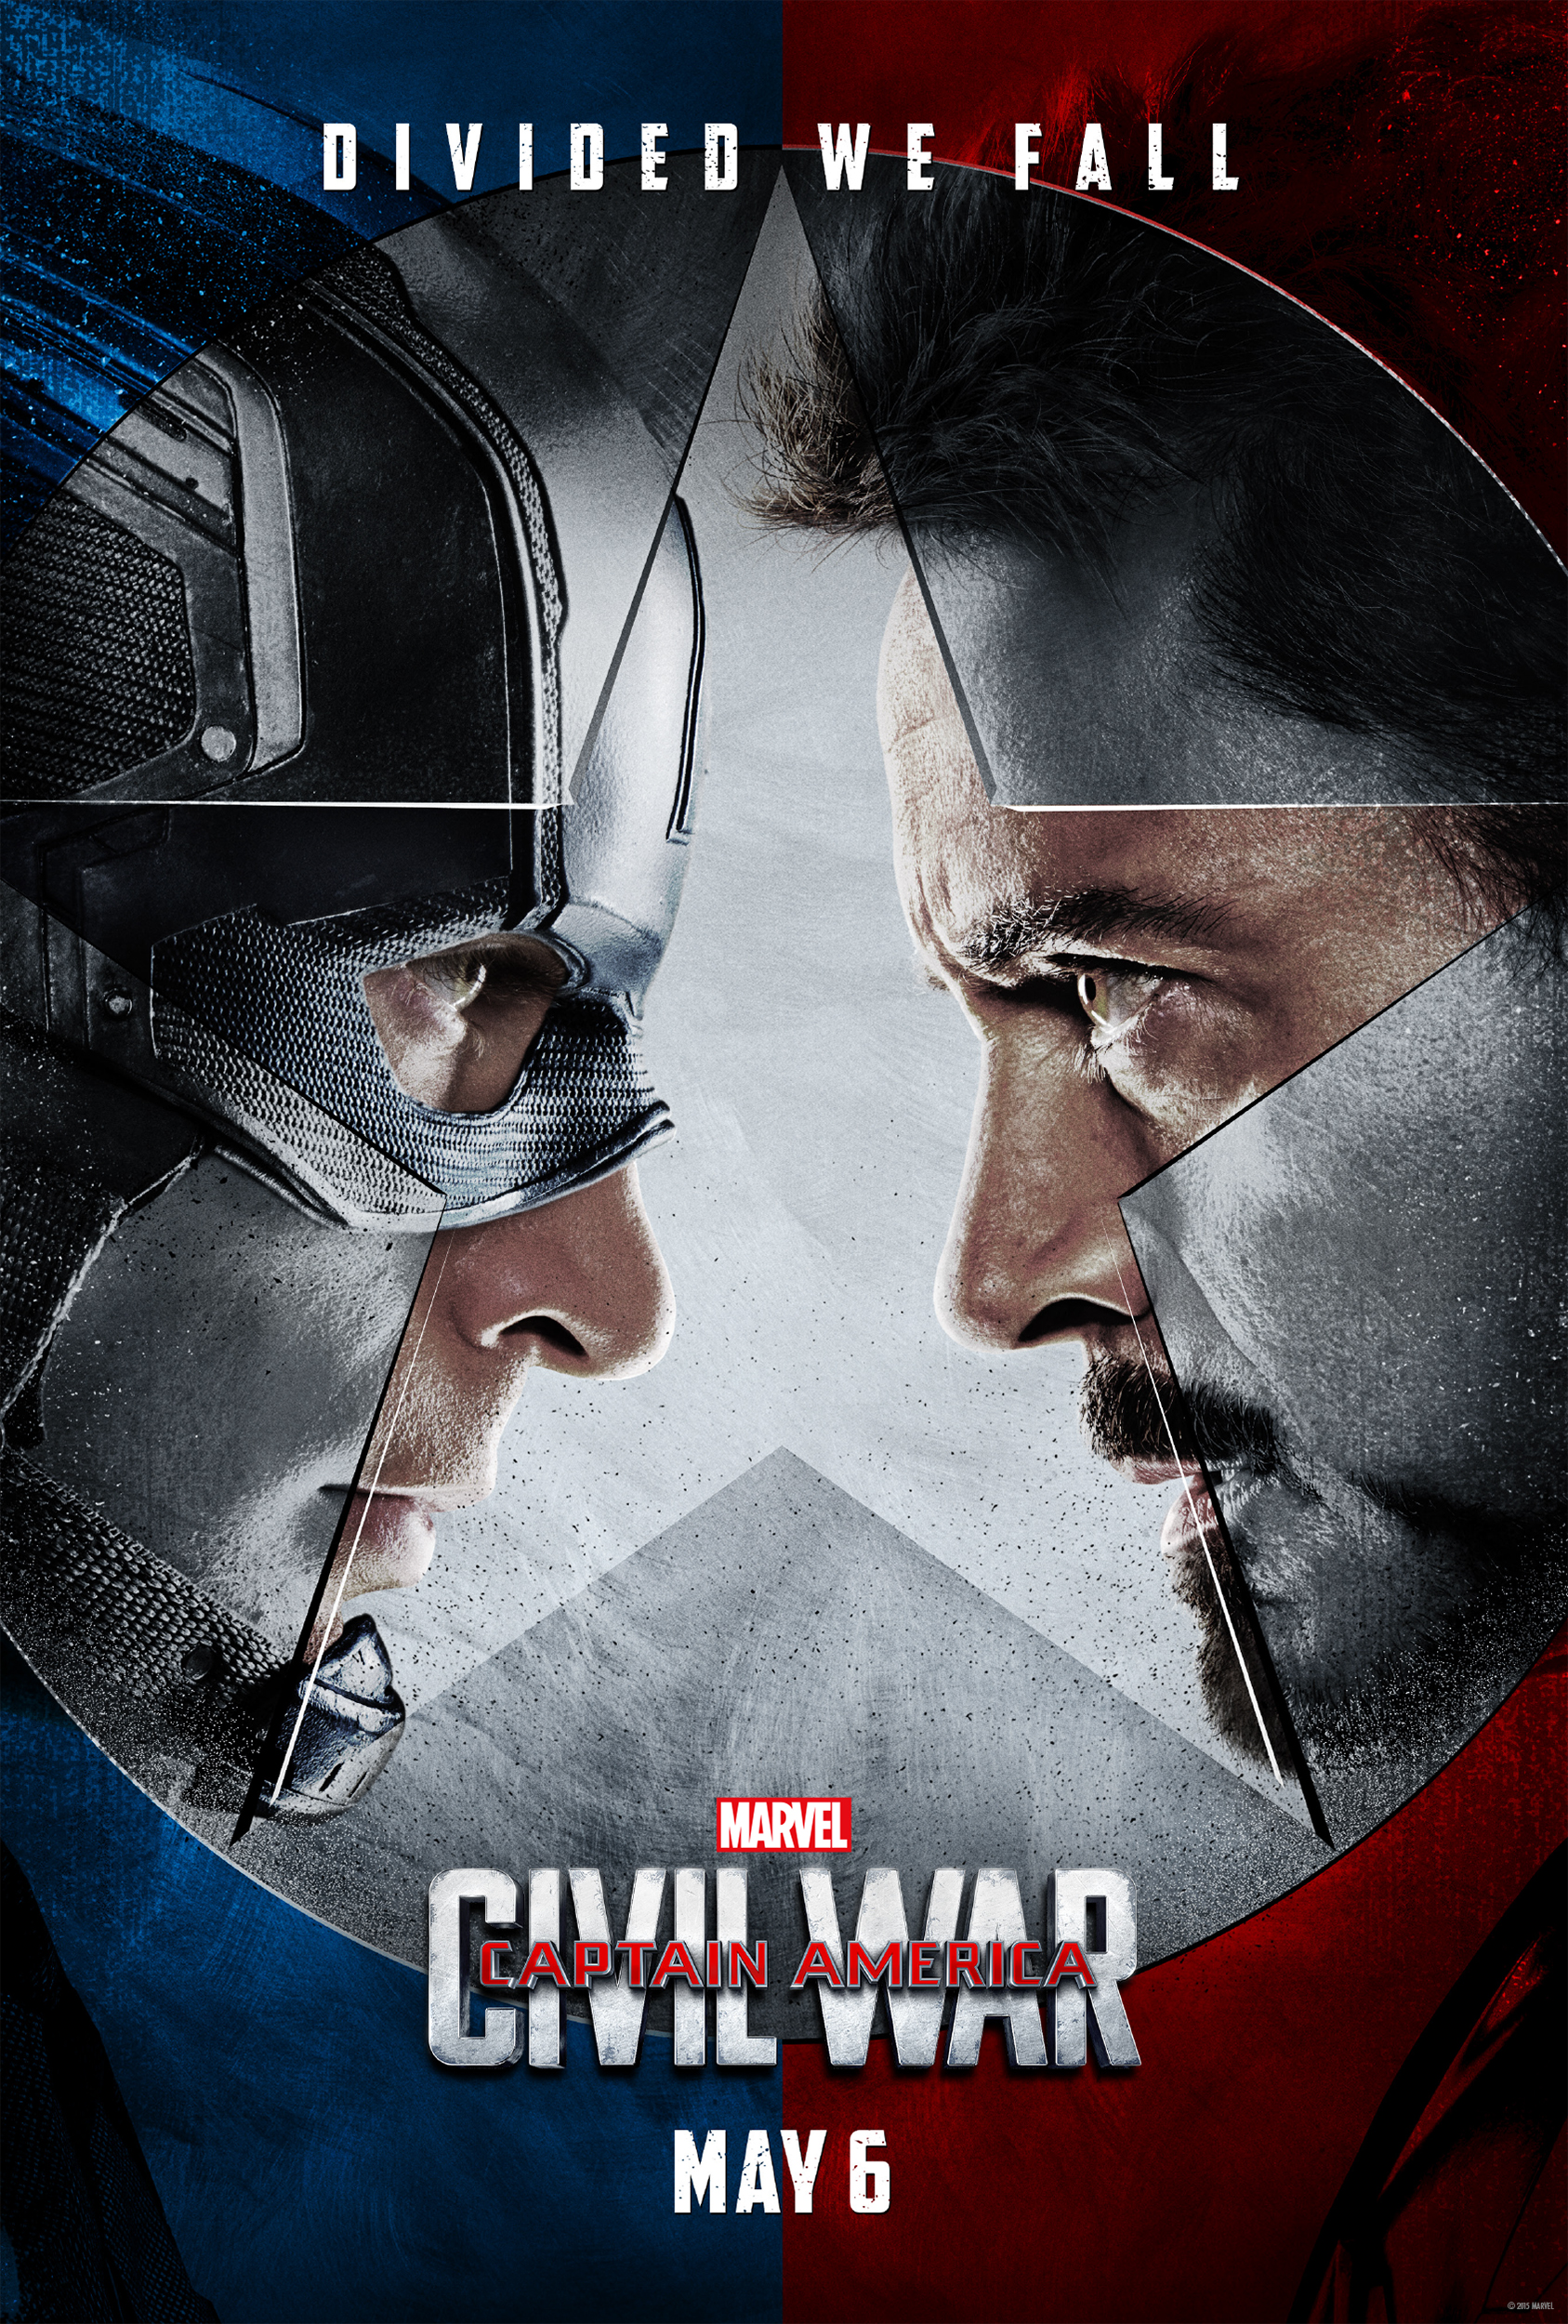 captain-america-civil-war-poster1.jpg